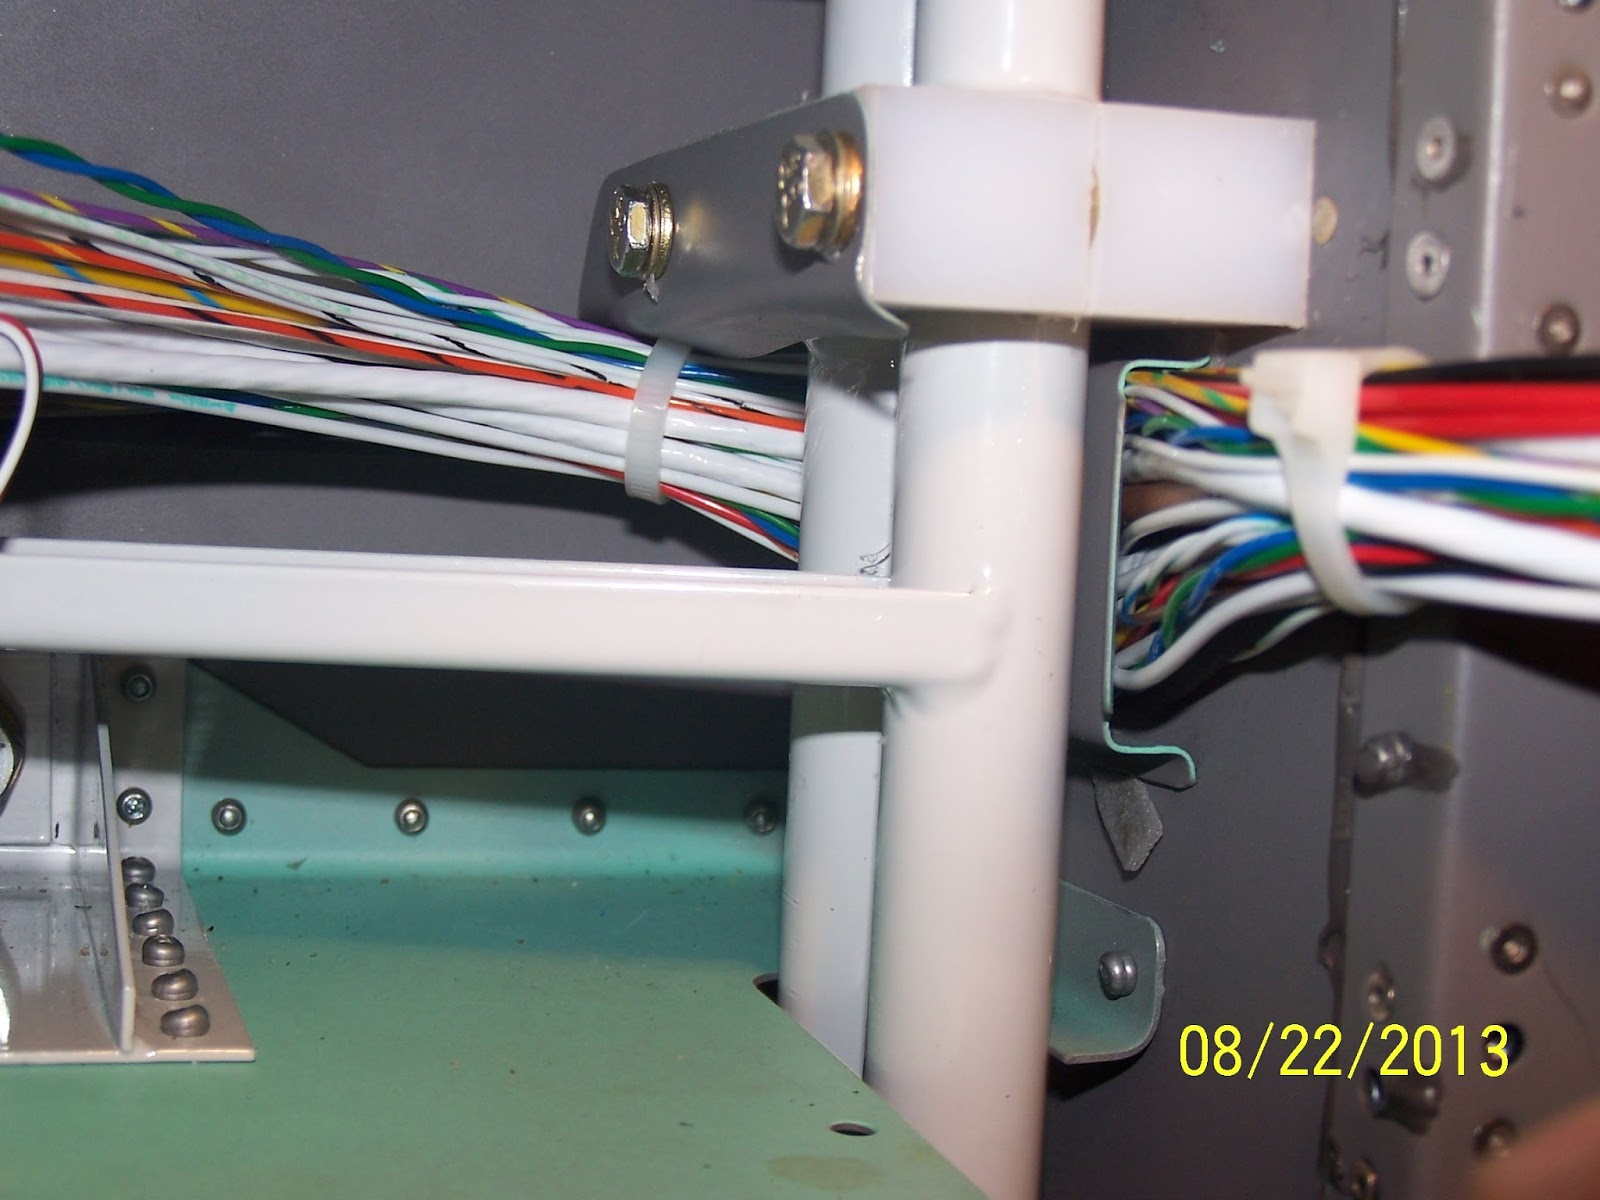 Rv 12 N79am Fuselage Wiring Harness Part 3 Final Composite Below Is A Picture Of The Shield And Bundle Hangar That Constrains Harnesses As They Run Beneath Rudder Pedal